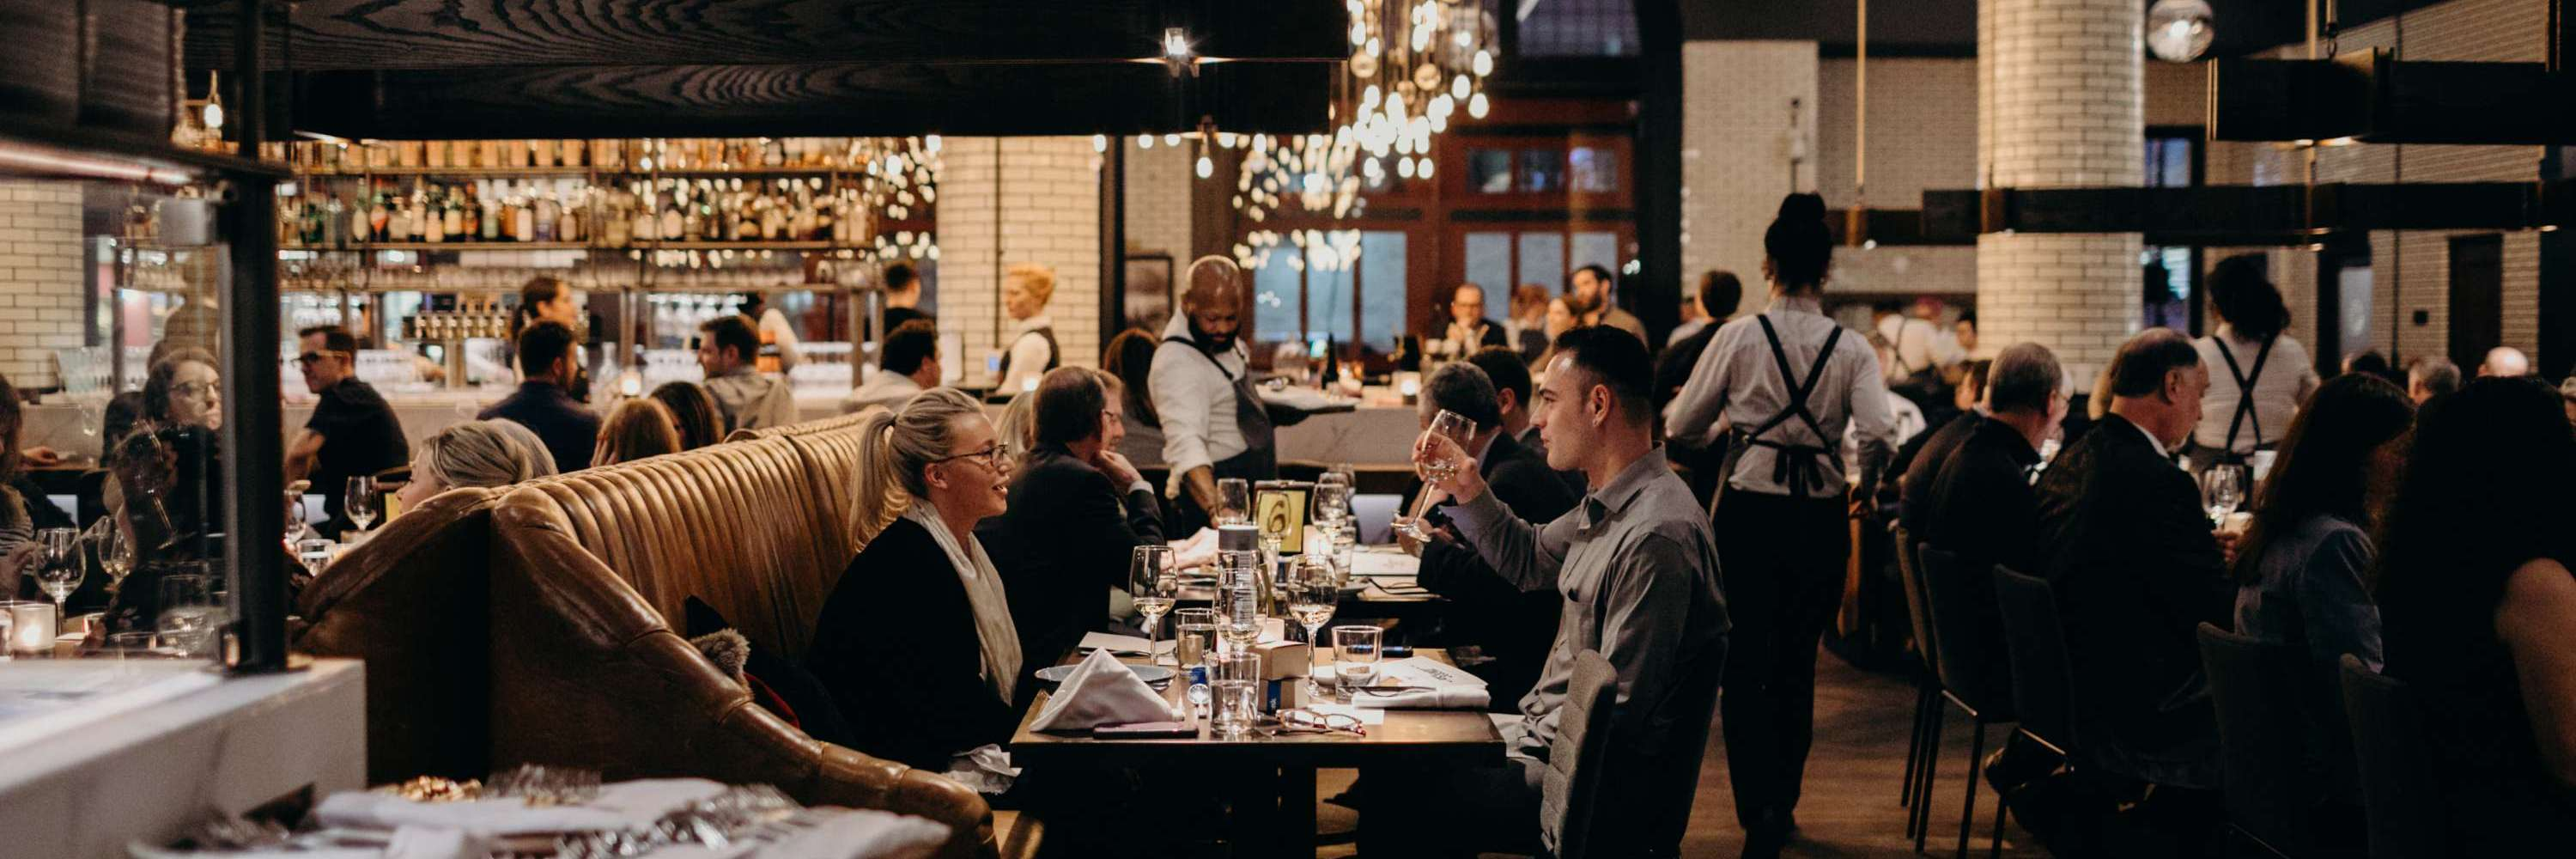 People dining at Detroit restaurant in the evening